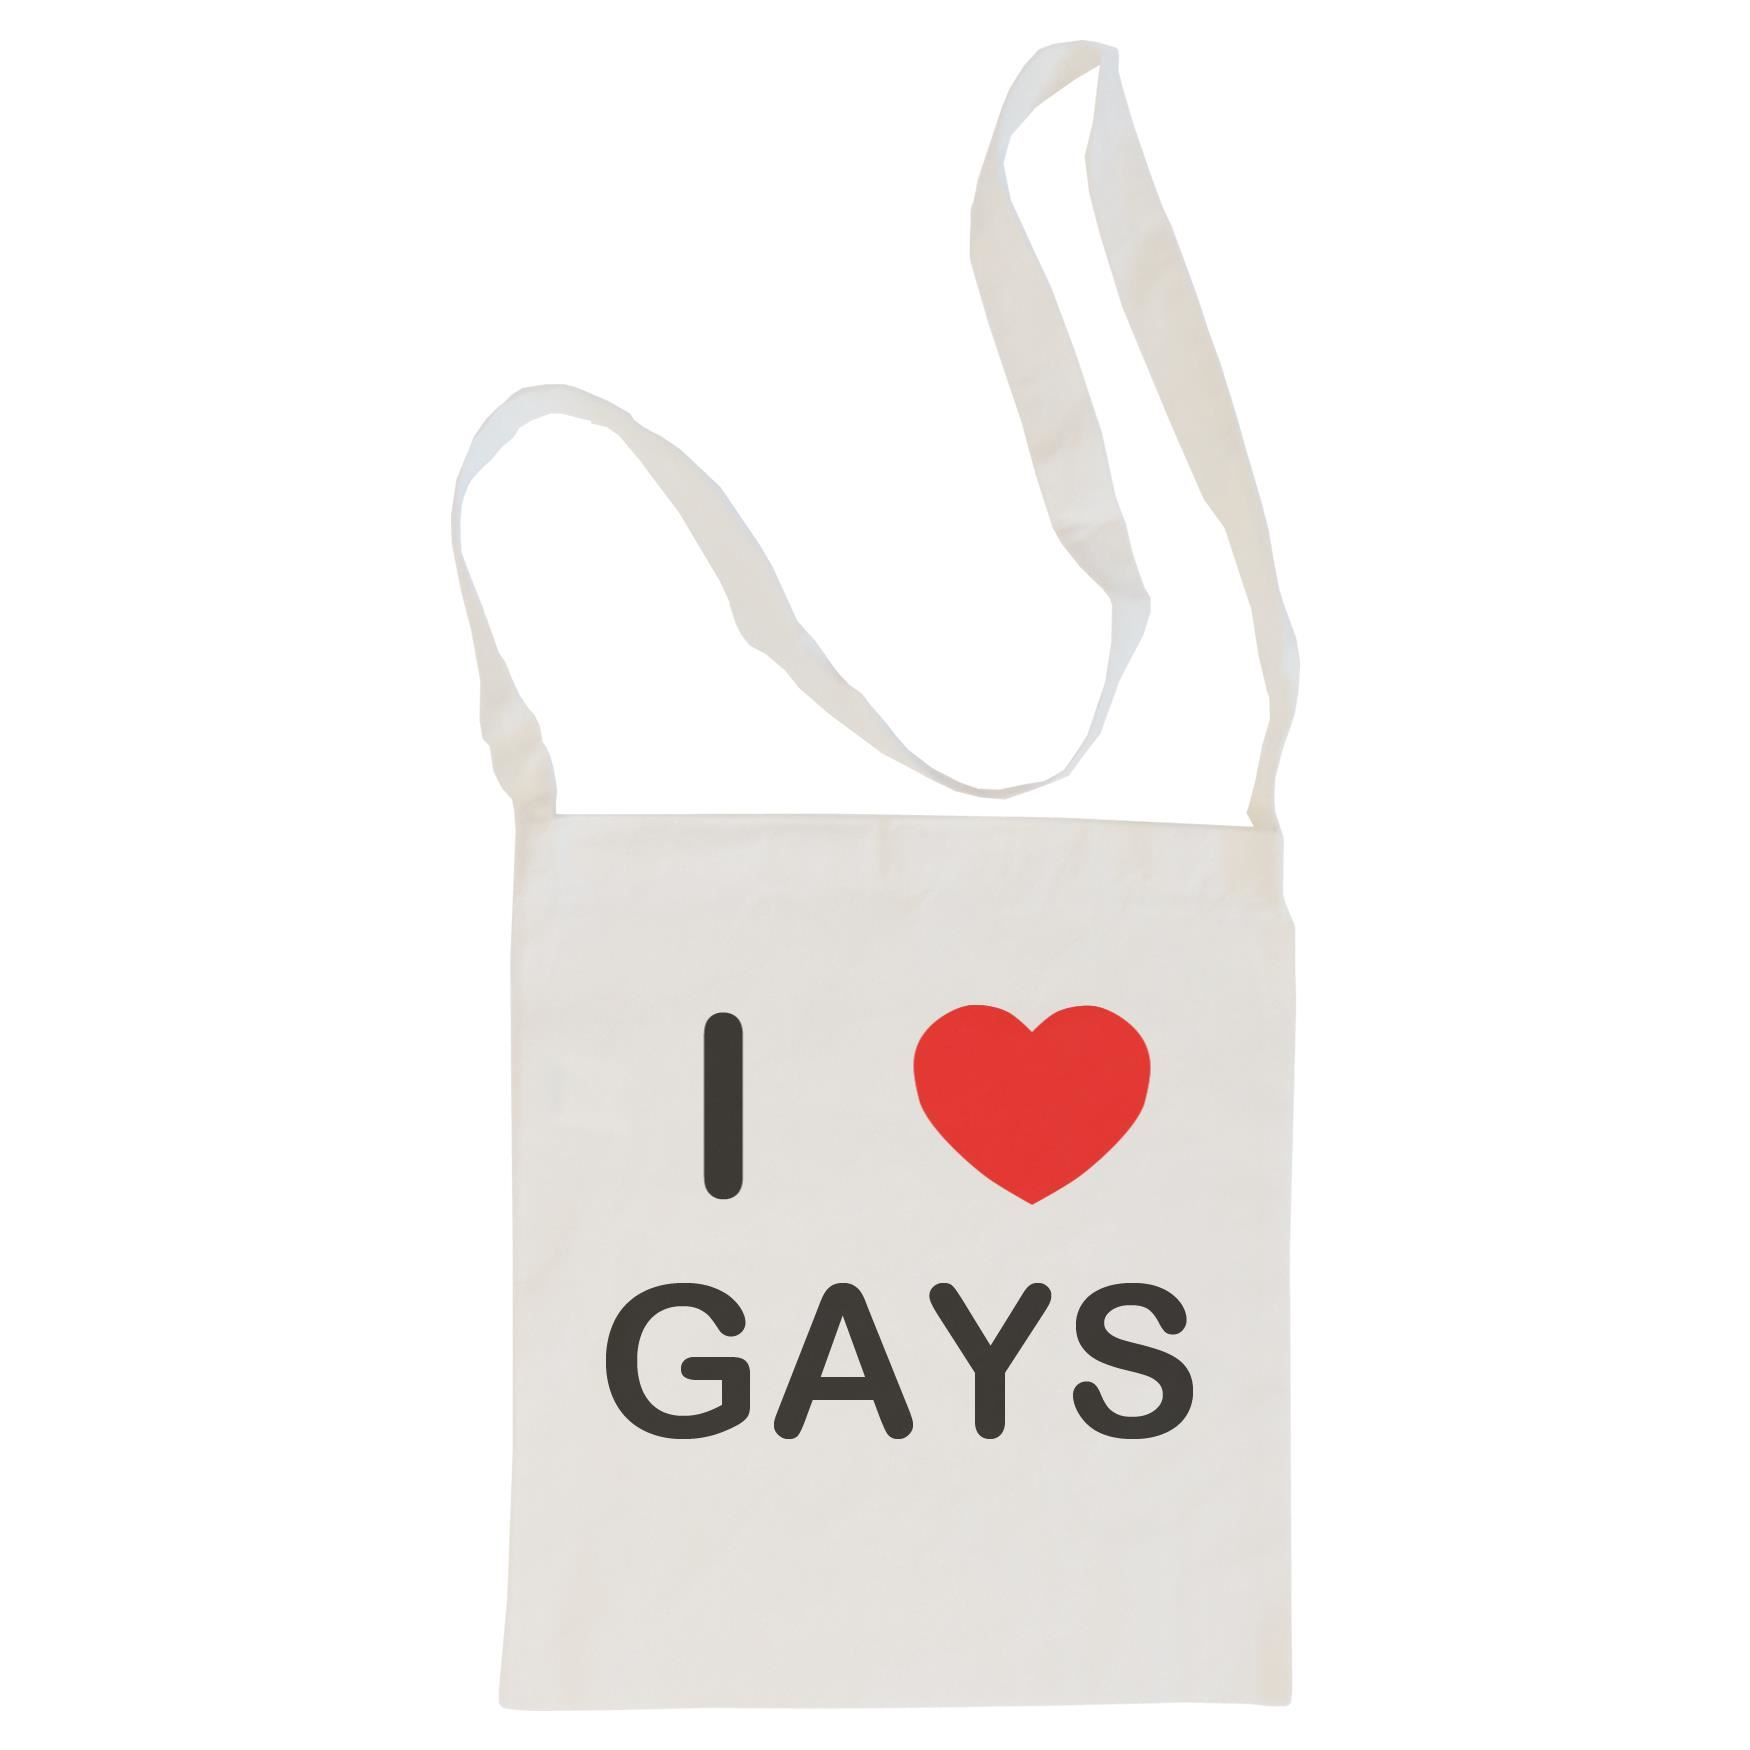 I Love Gays - Cotton Bag | Size choice Tote, Shopper or Sling